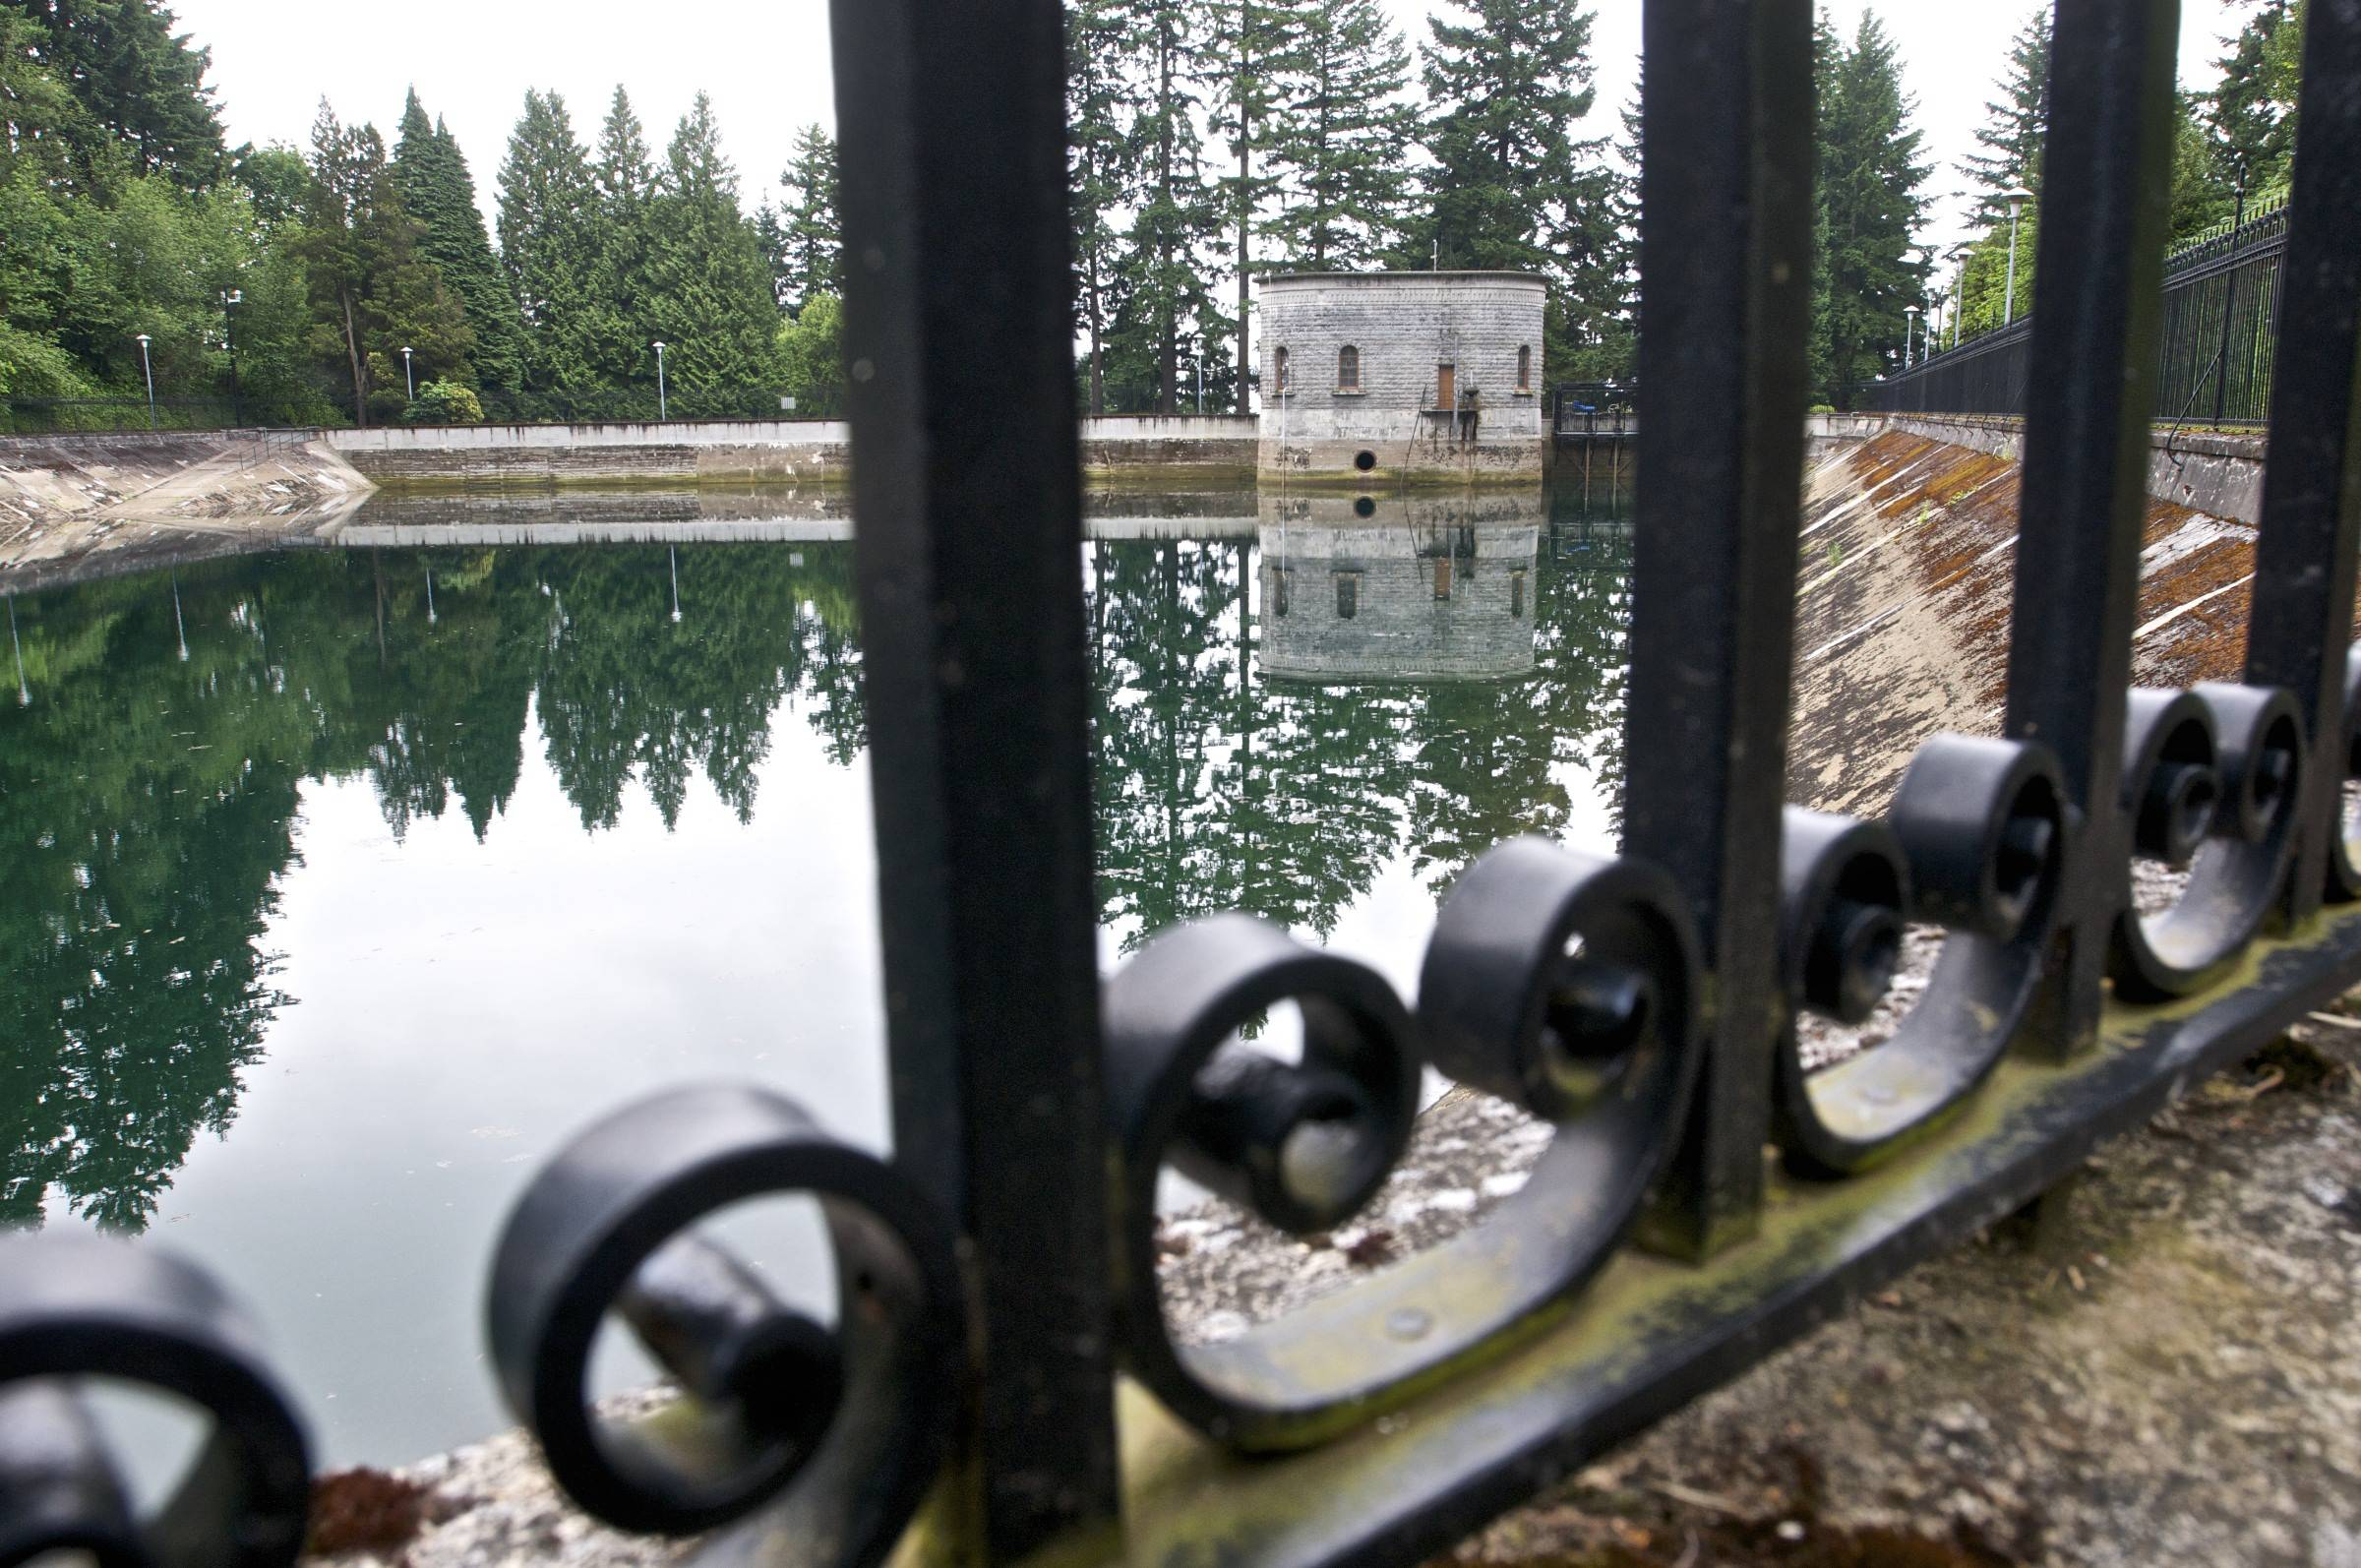 The Mount Tabor Number 1 reservoir in Portland, Ore. Portland officials said they are flushing away millions of gallons of treated water for the second time in less than three years because someone urinated into a city reservoir. This time, 38 million gallons from a different reservoir at the same location will be discarded after a 19-year-old was videotaped in the act.